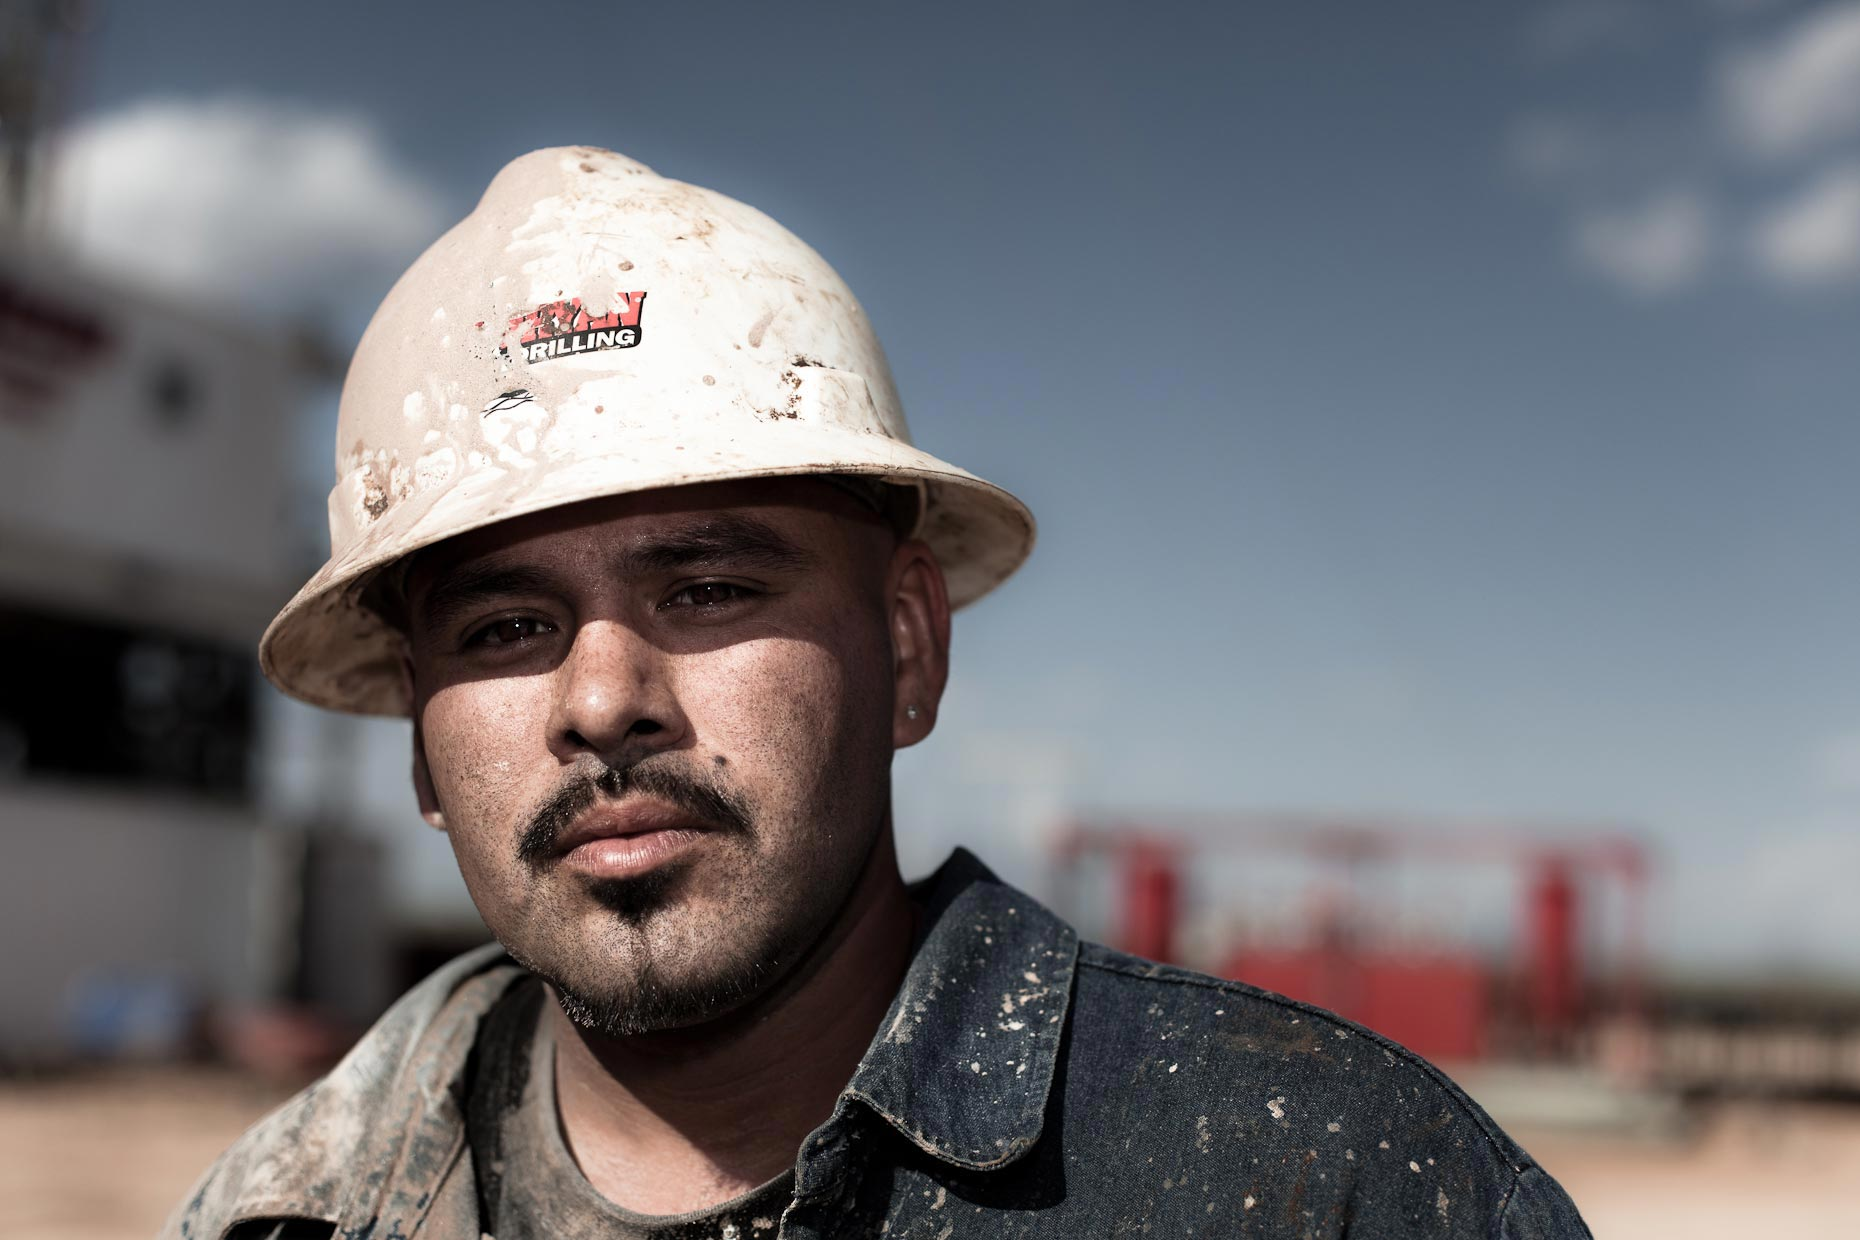 Portrait of an oil roughneck |  Scott Gable industrial photographer